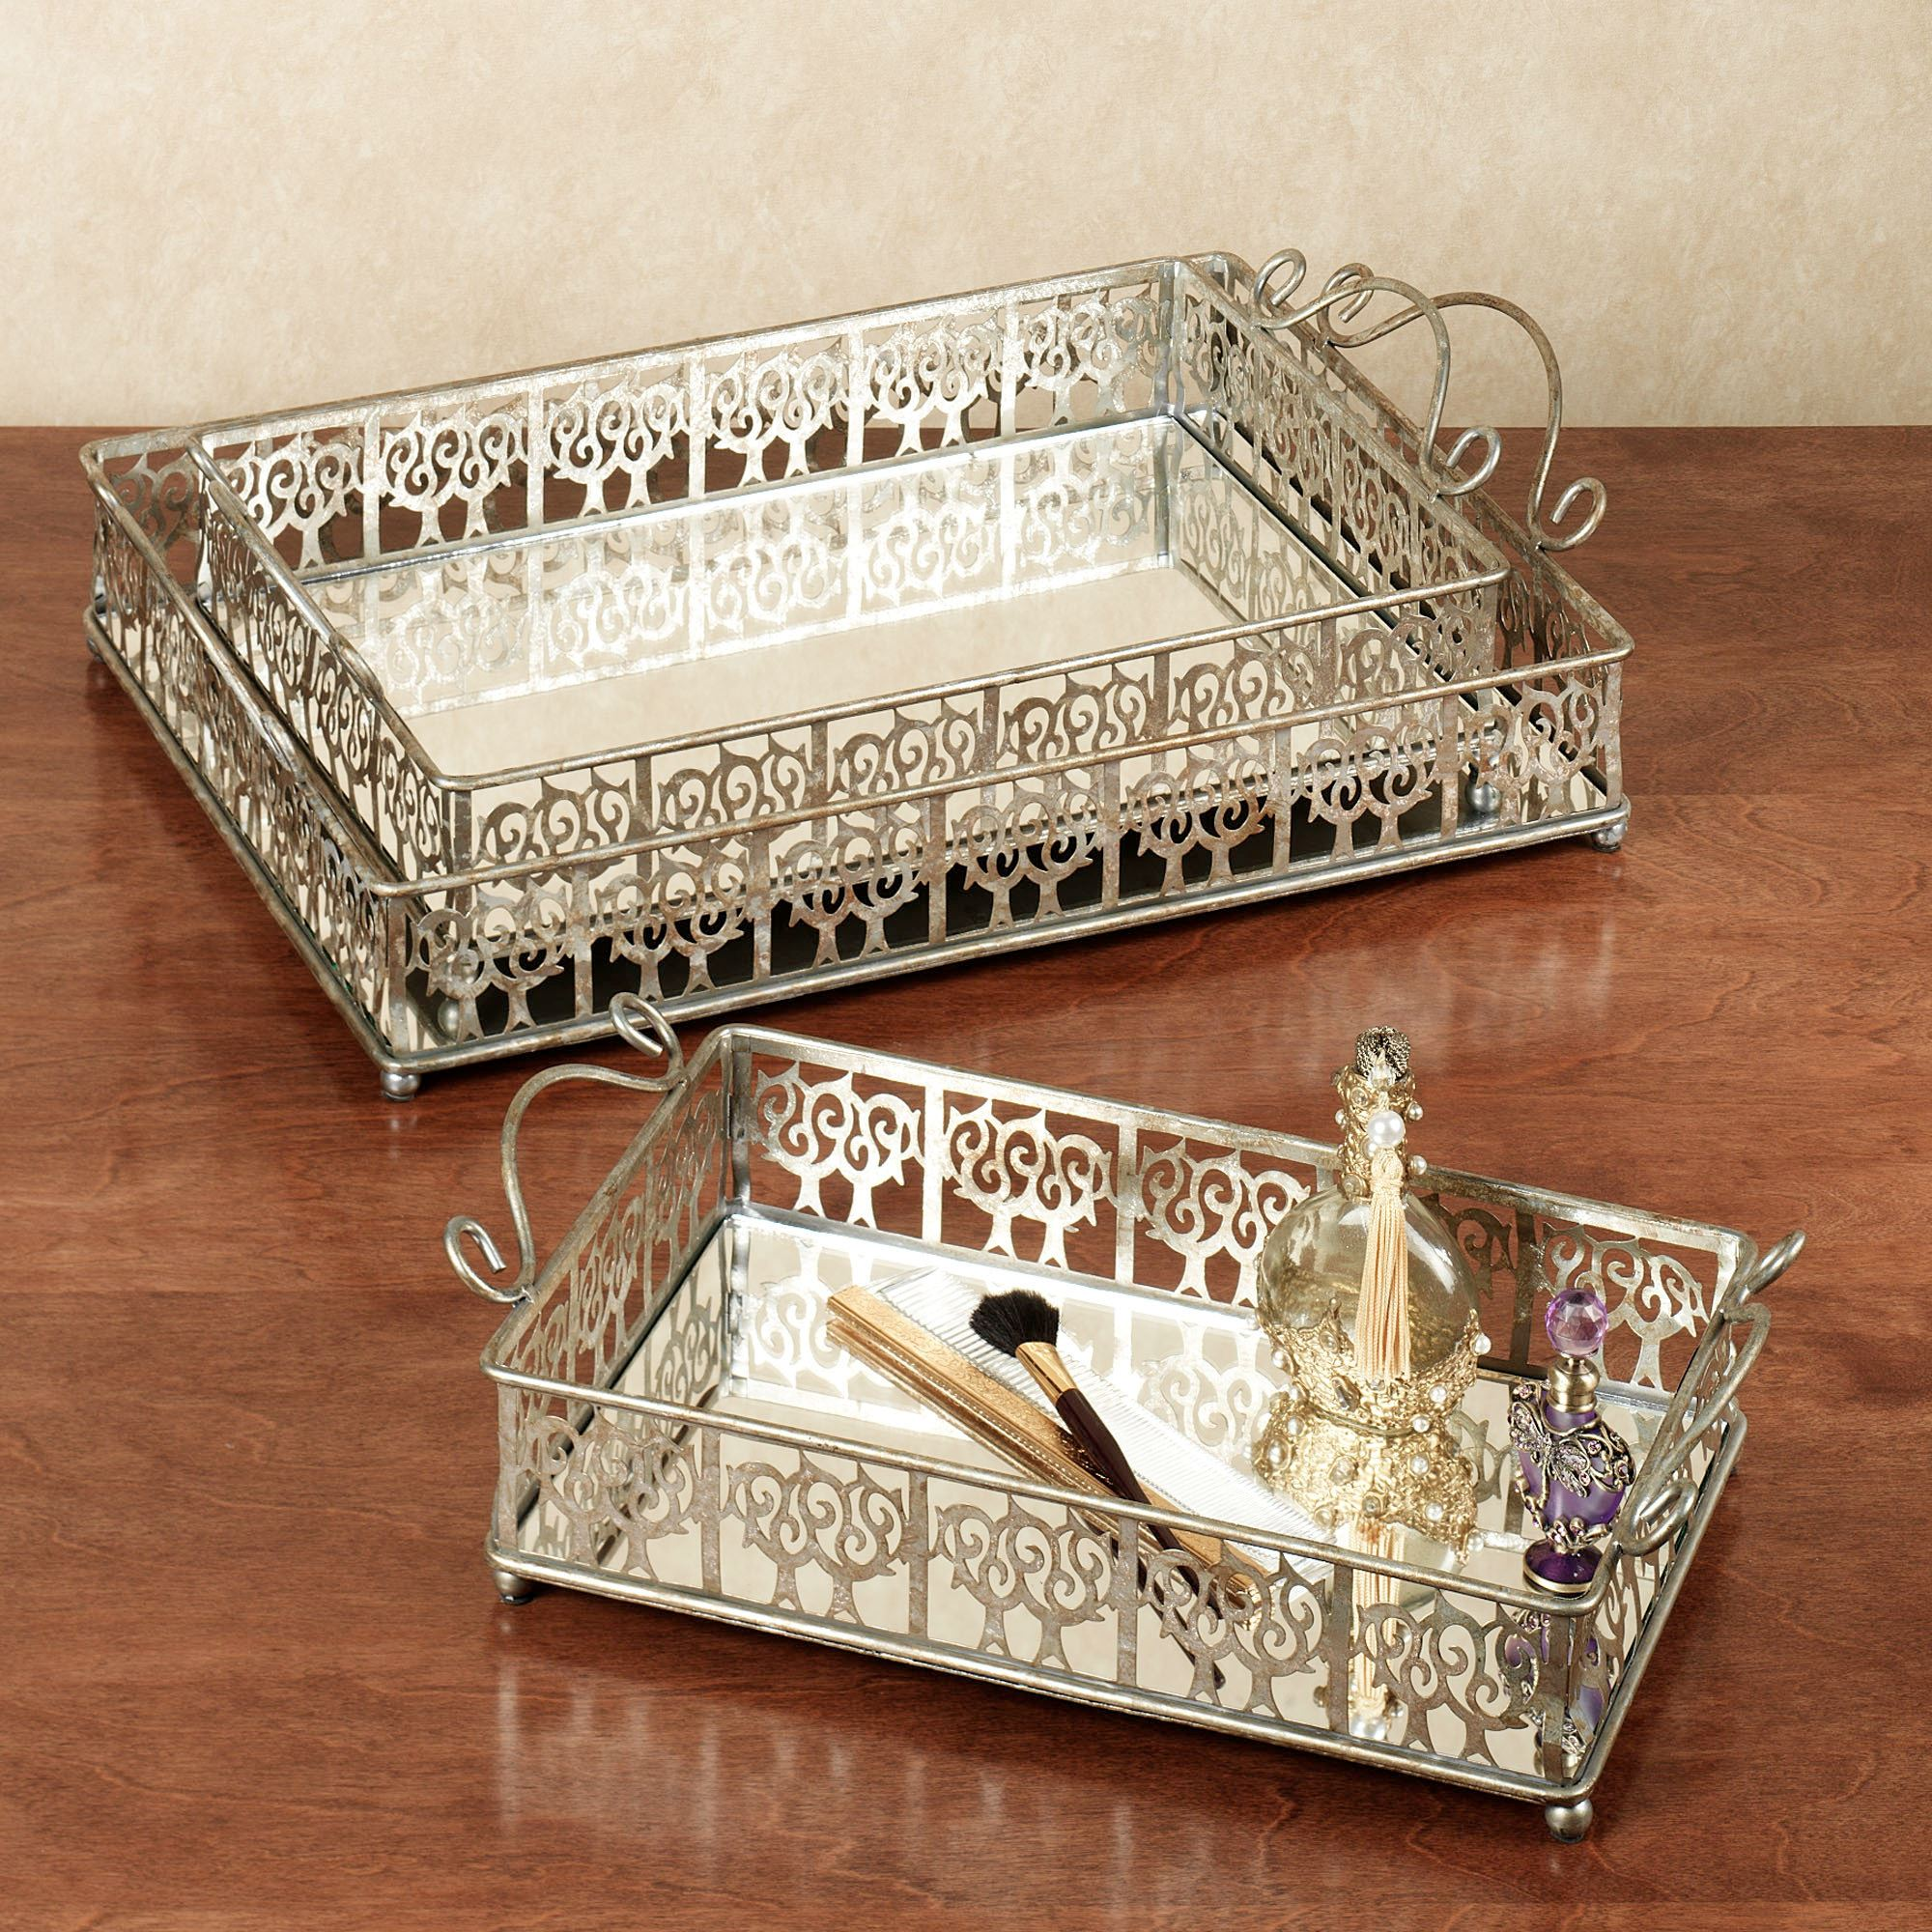 Appealing Mirrored Vanity Tray